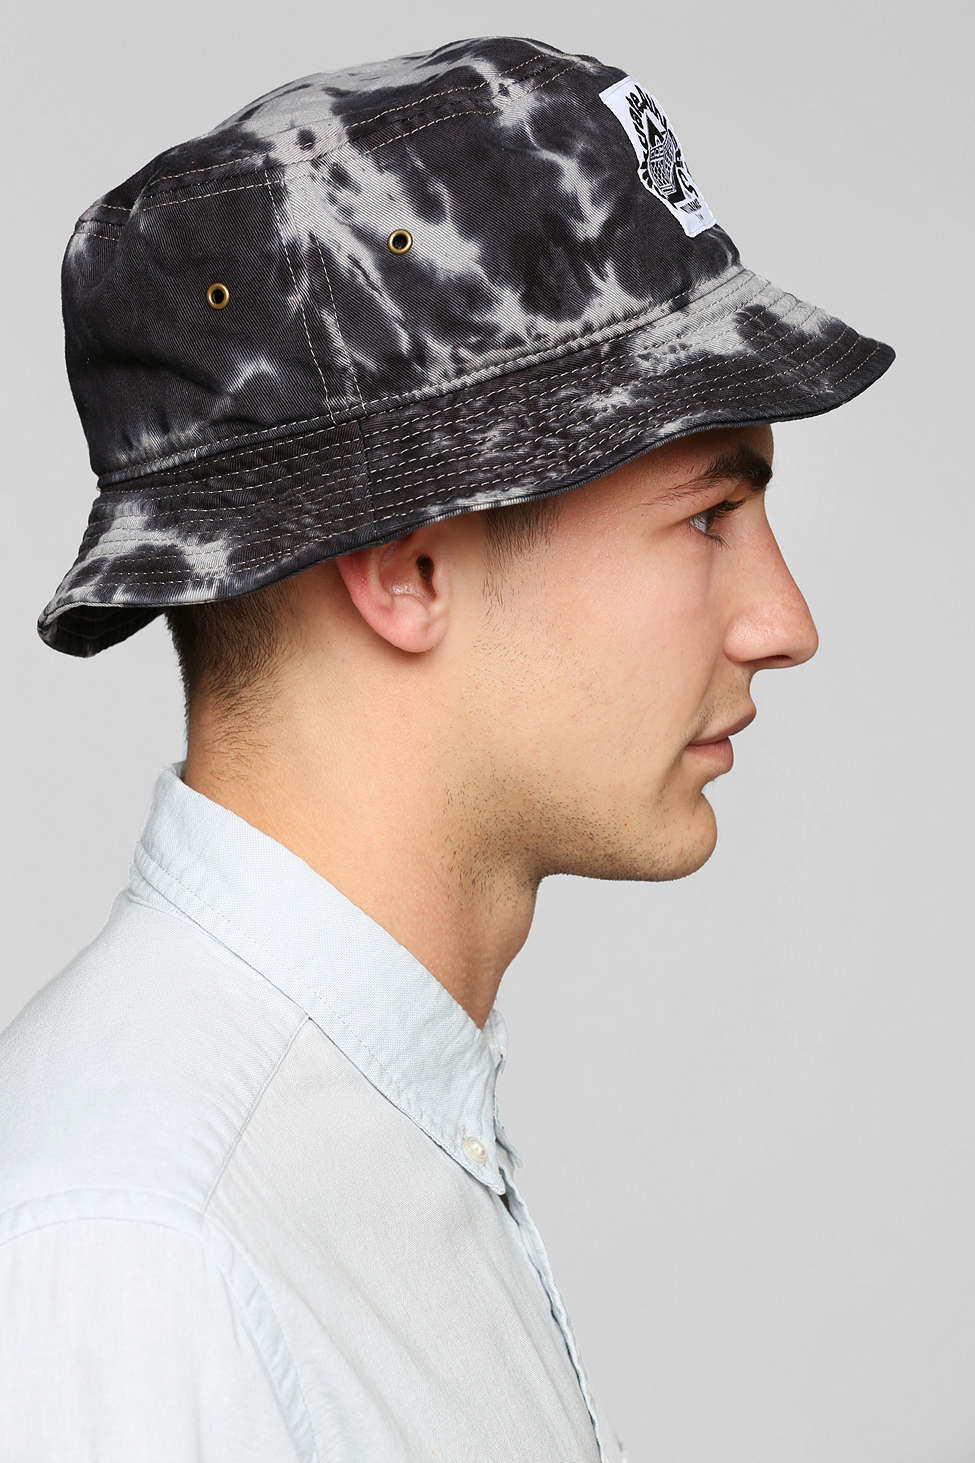 1b1f65271bdd0a Gallery. Previously sold at: Urban Outfitters · Men's Panama Straw Hats ...